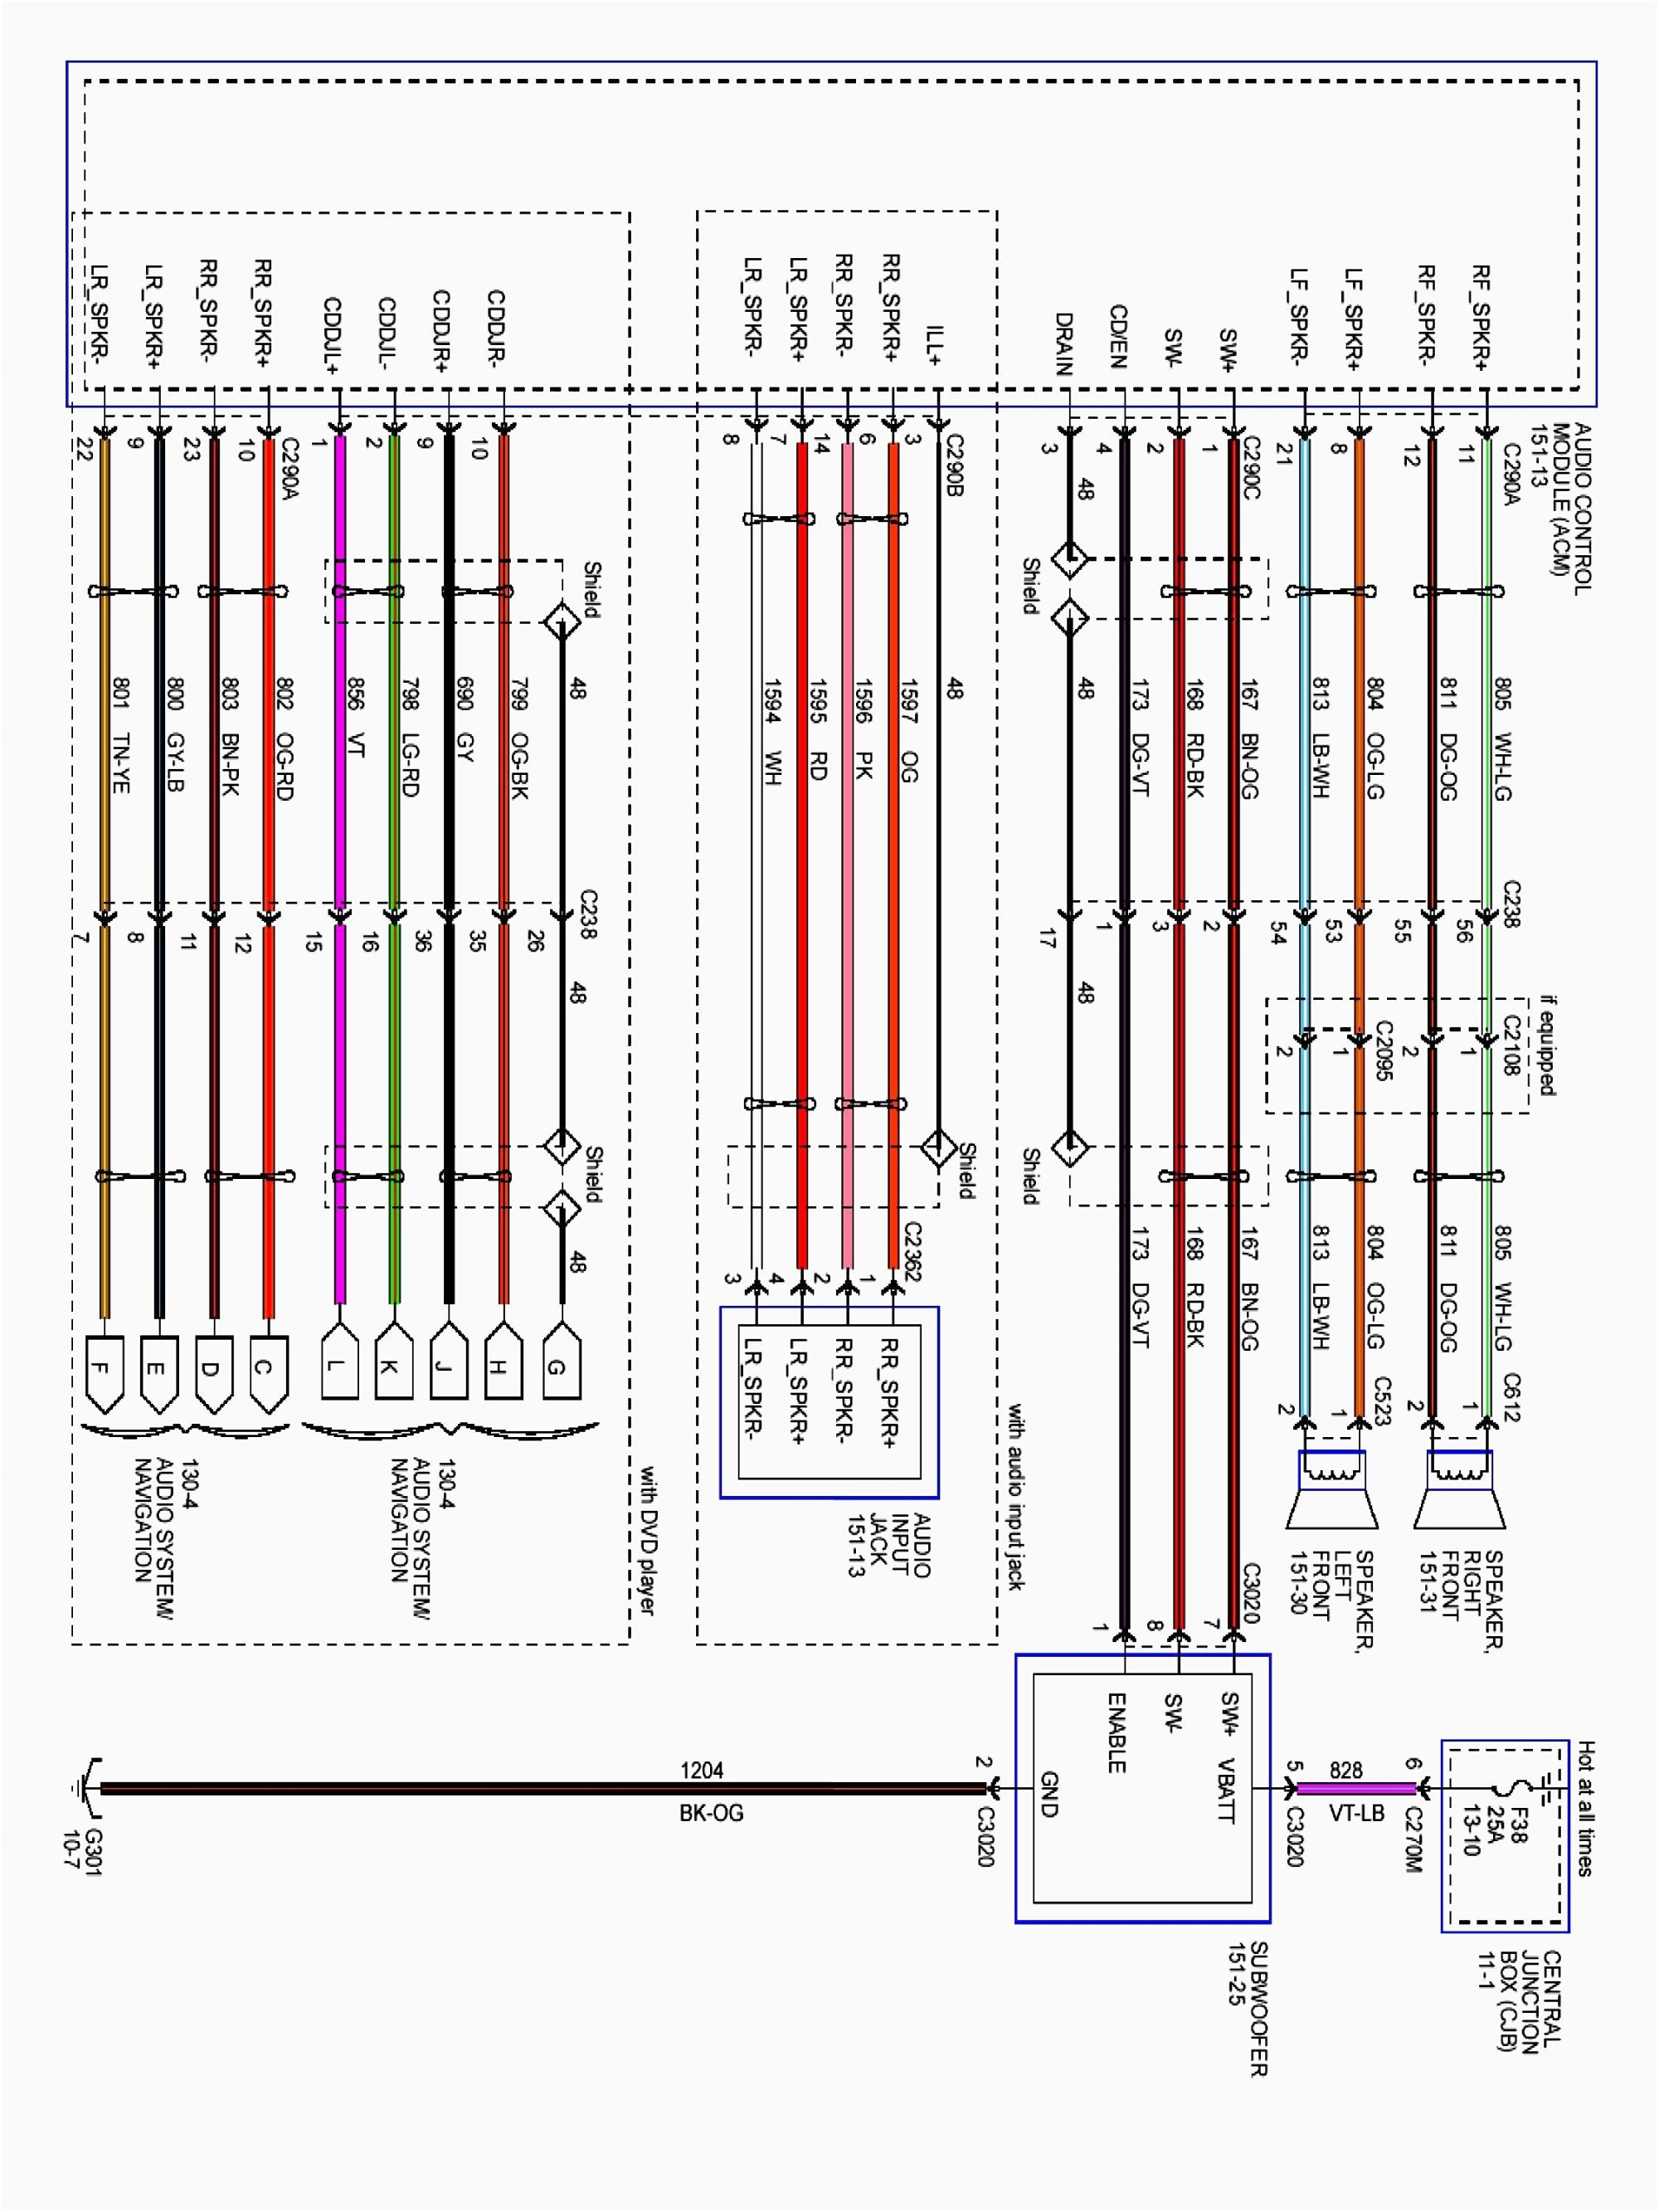 hight resolution of 2008 ford f150 radio wiring diagram wiring diagram user2008 ford f 150 radio wire diagram wiring